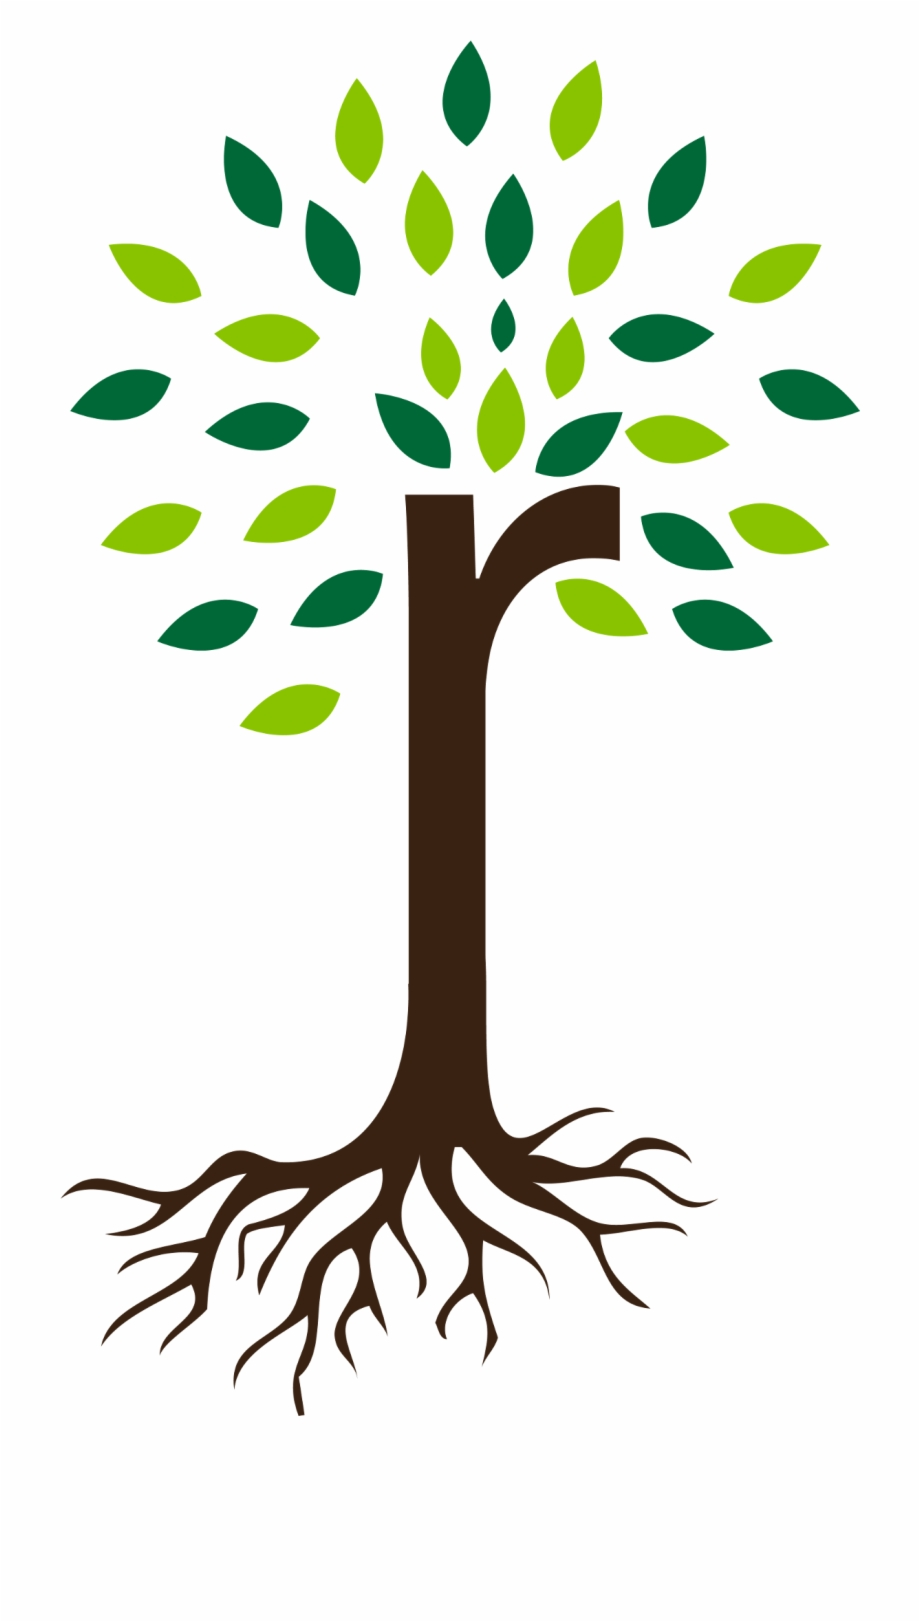 Roots clipart tree icon.  collection of png